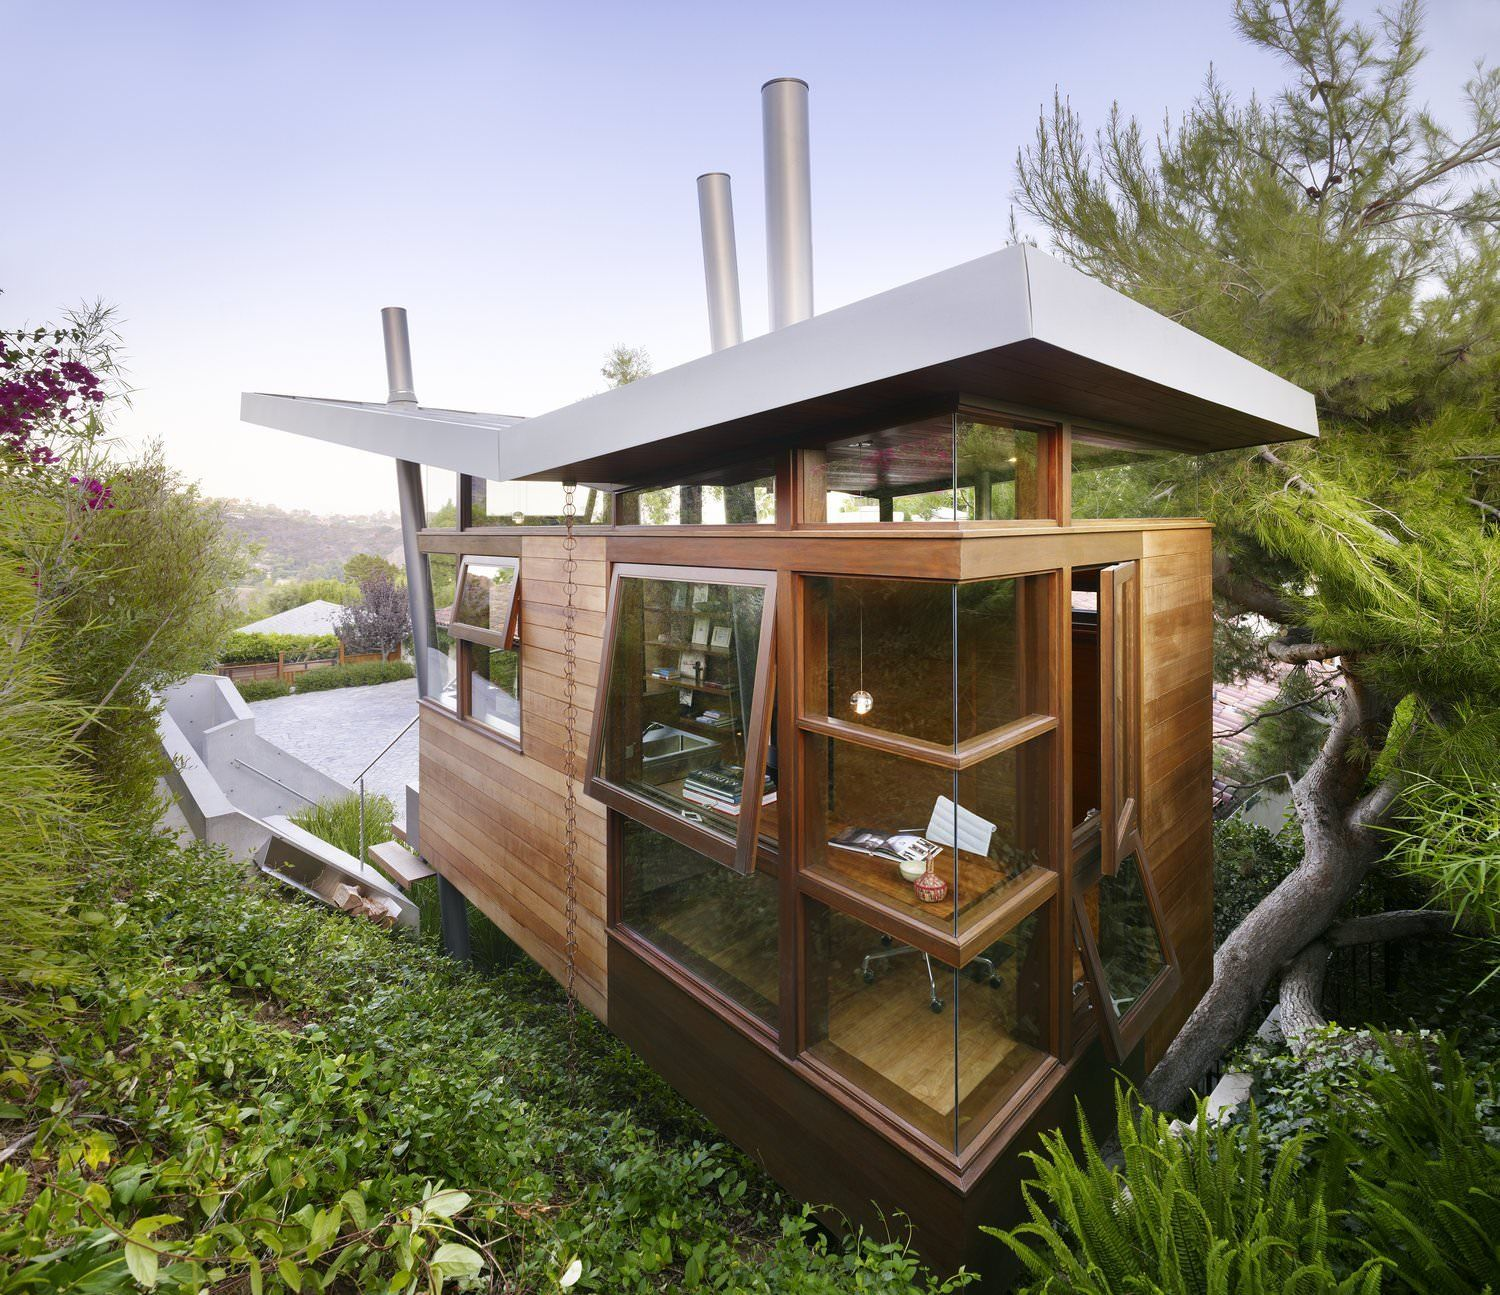 Compact Wooden Studioretreat Perched Atop Steel Pylons At The Base